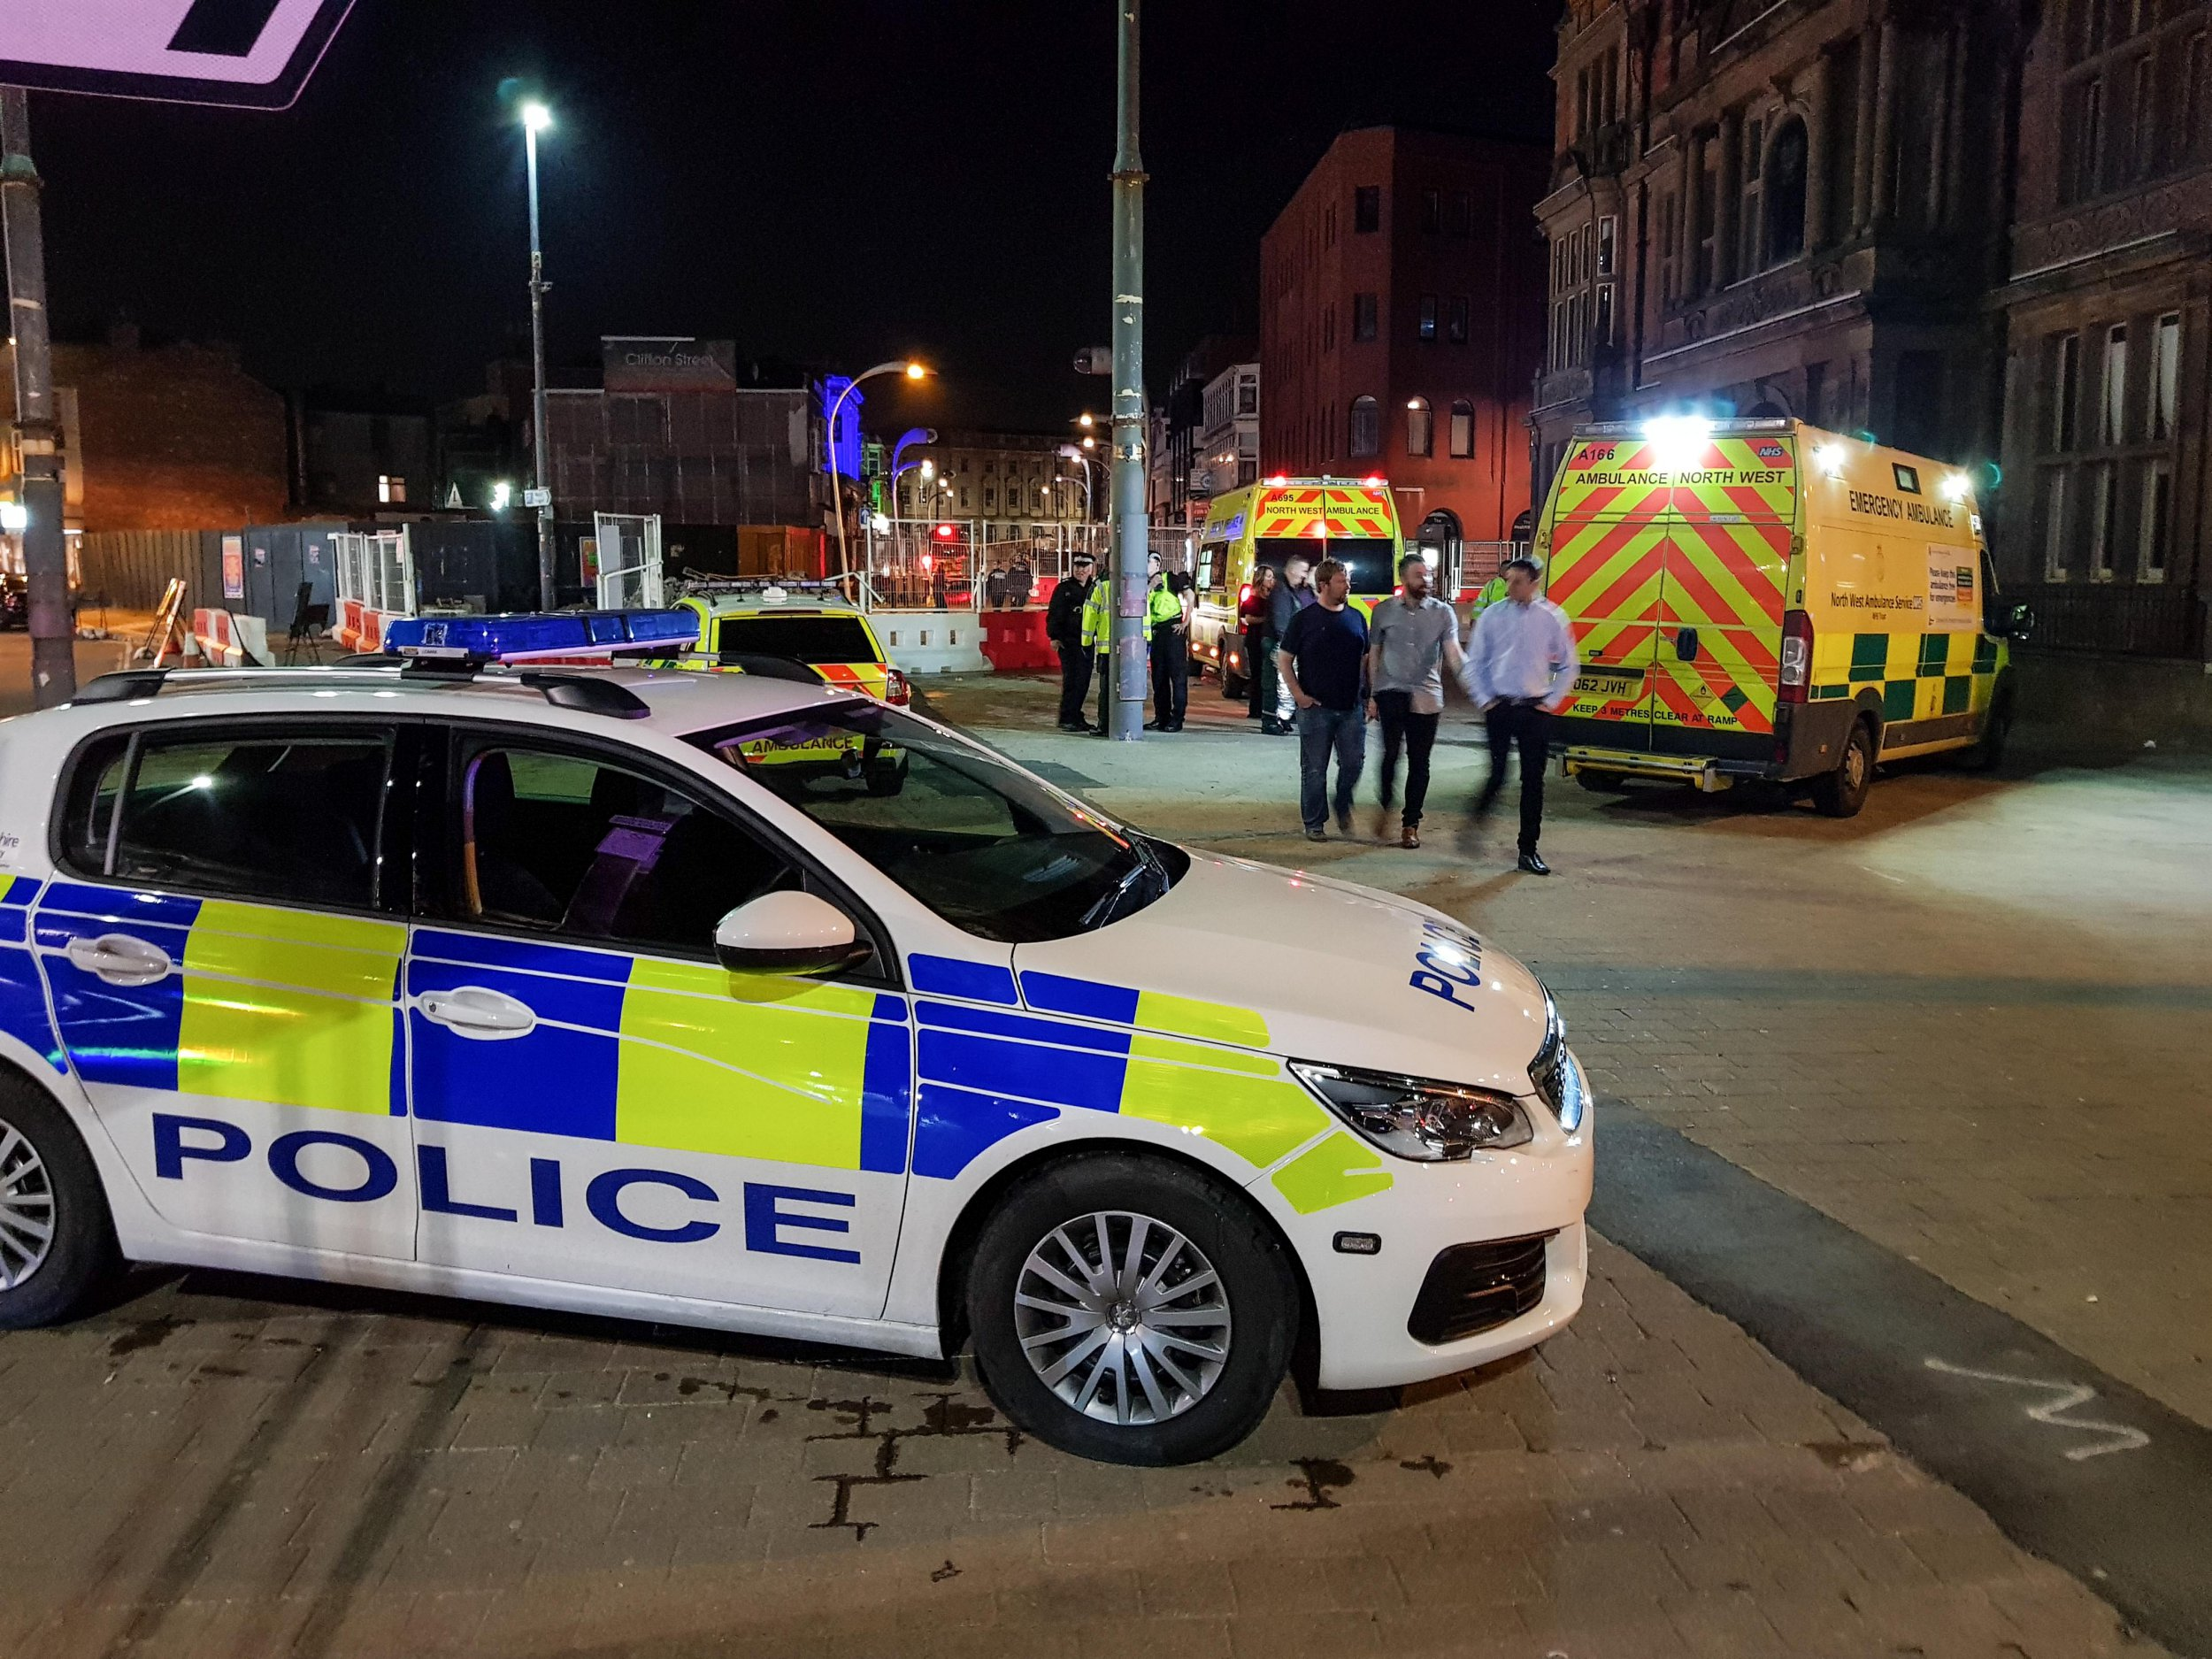 Driver, 19, arrested after car ploughs into crowd outside Blackpool nightclub